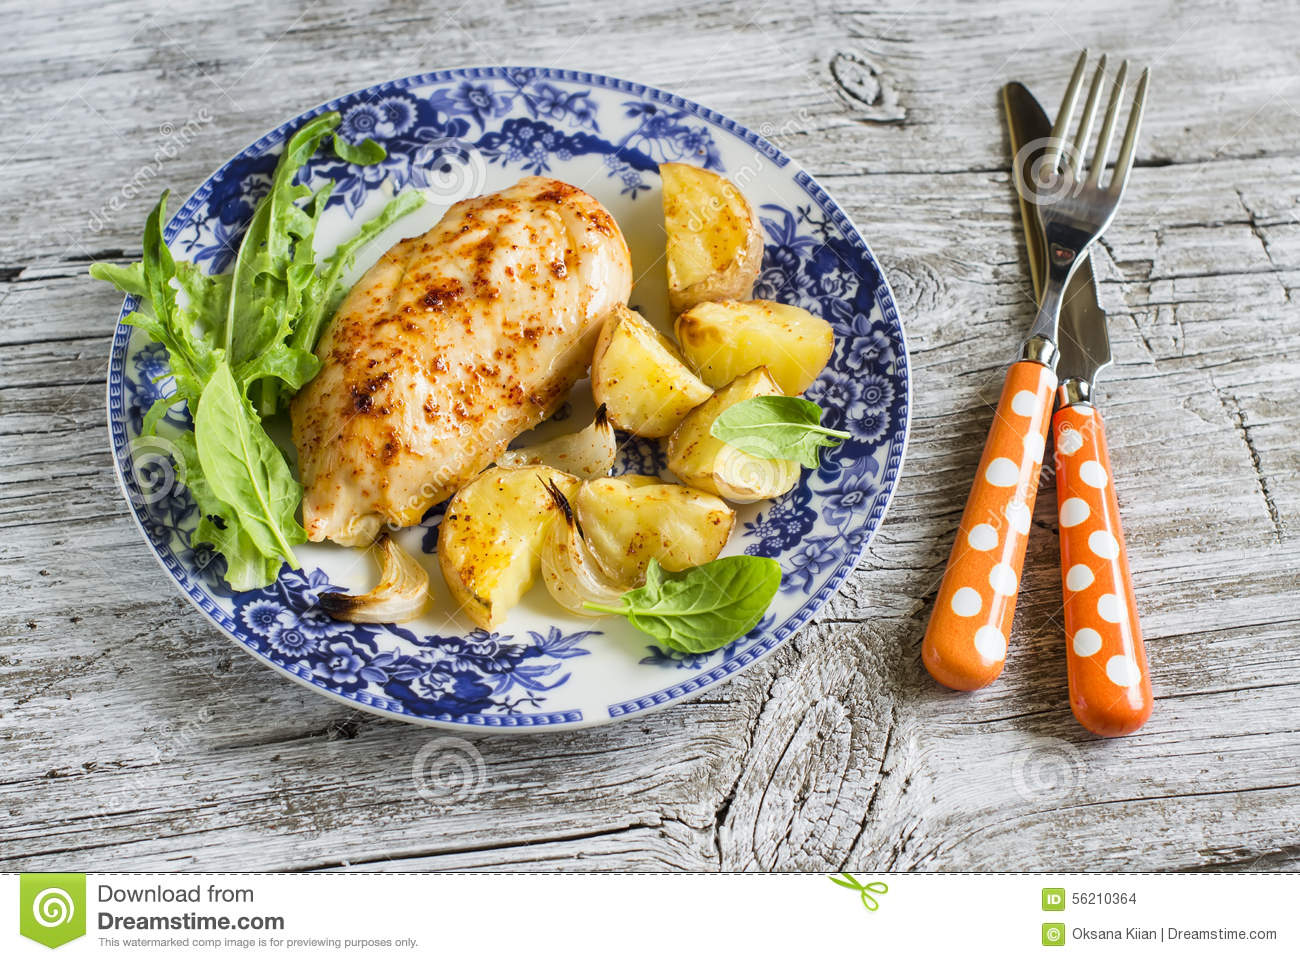 Baked chicken breast with potatoes and onions on a vintage plate